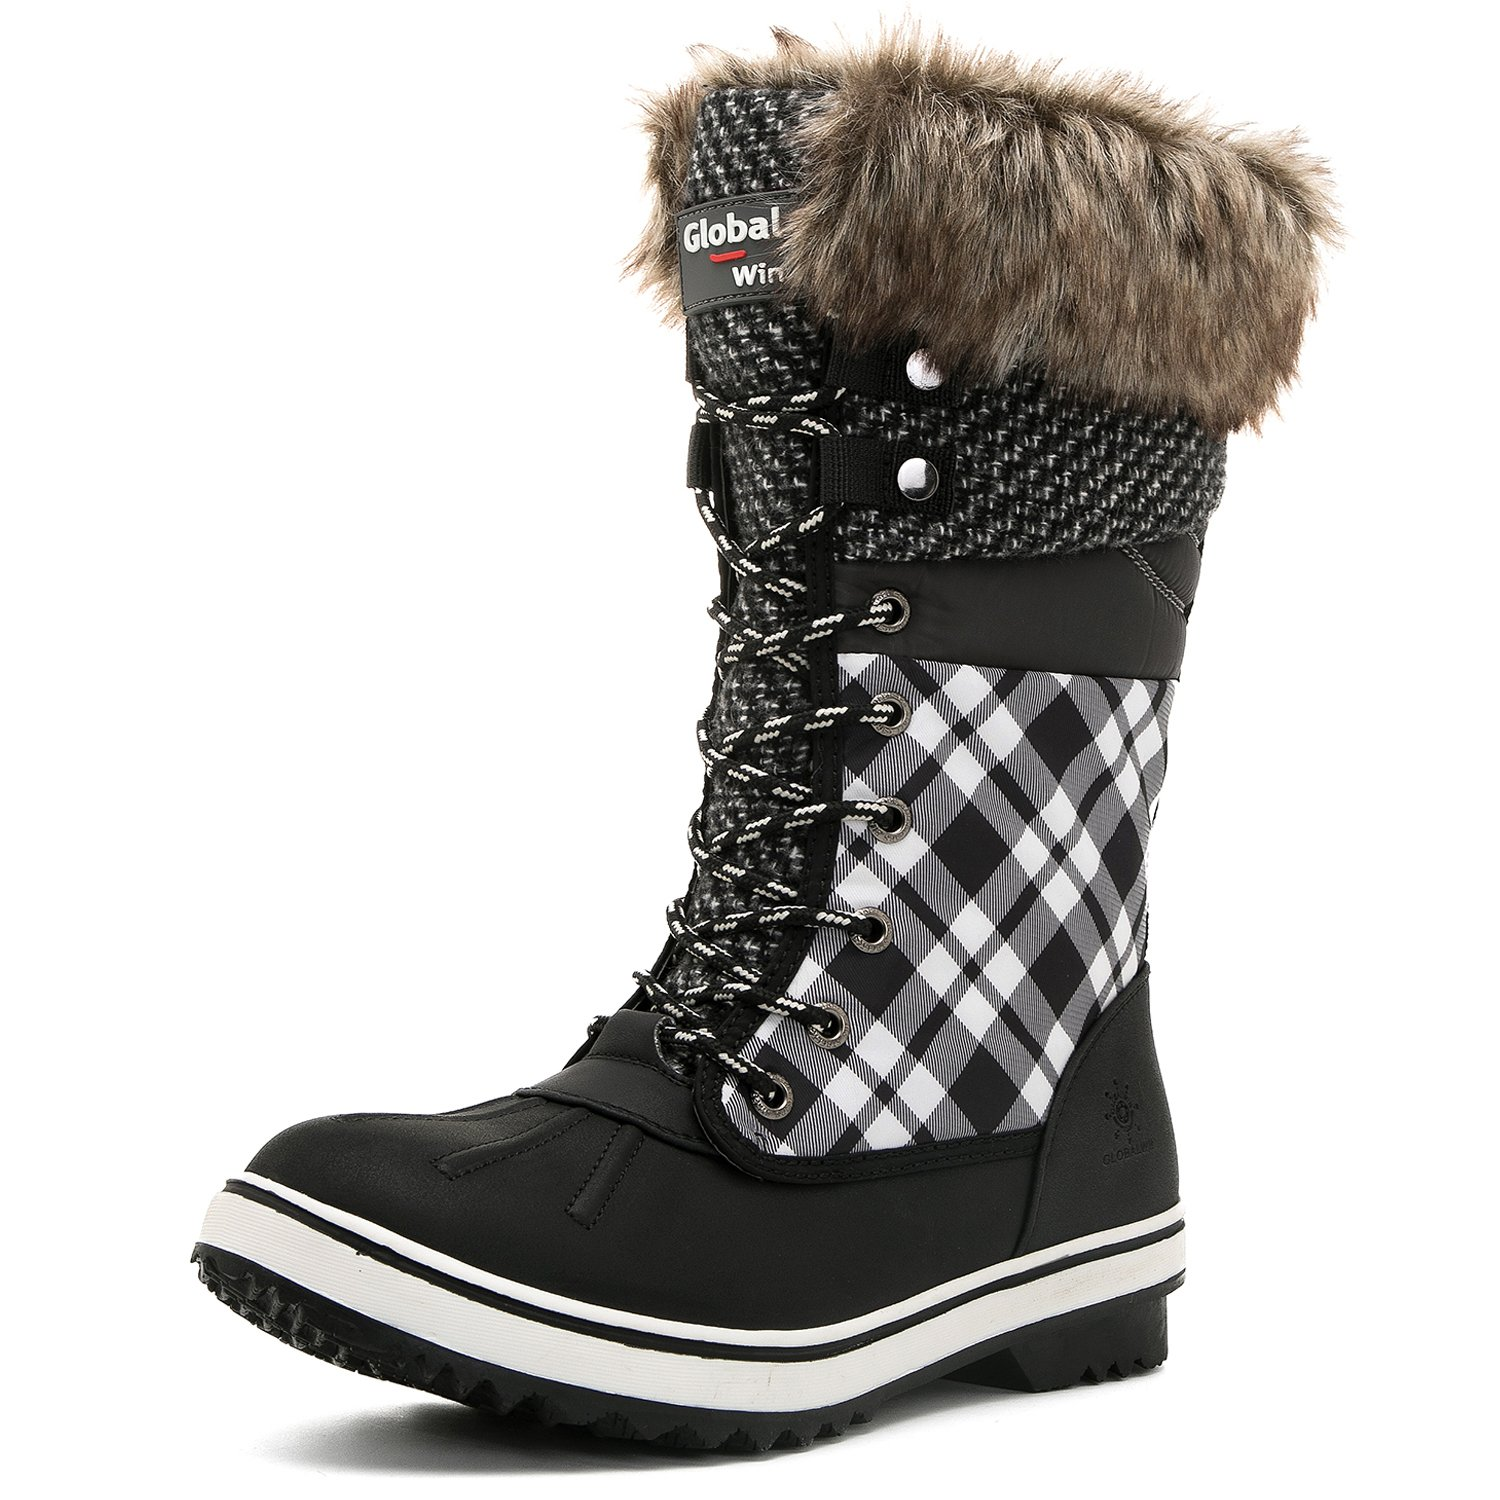 Global Win GLOBALWIN 10(M) Women's 1730 Winter Snow Boots B075DCCW2M 10(M) GLOBALWIN US Women's|1733black/White b3acd9